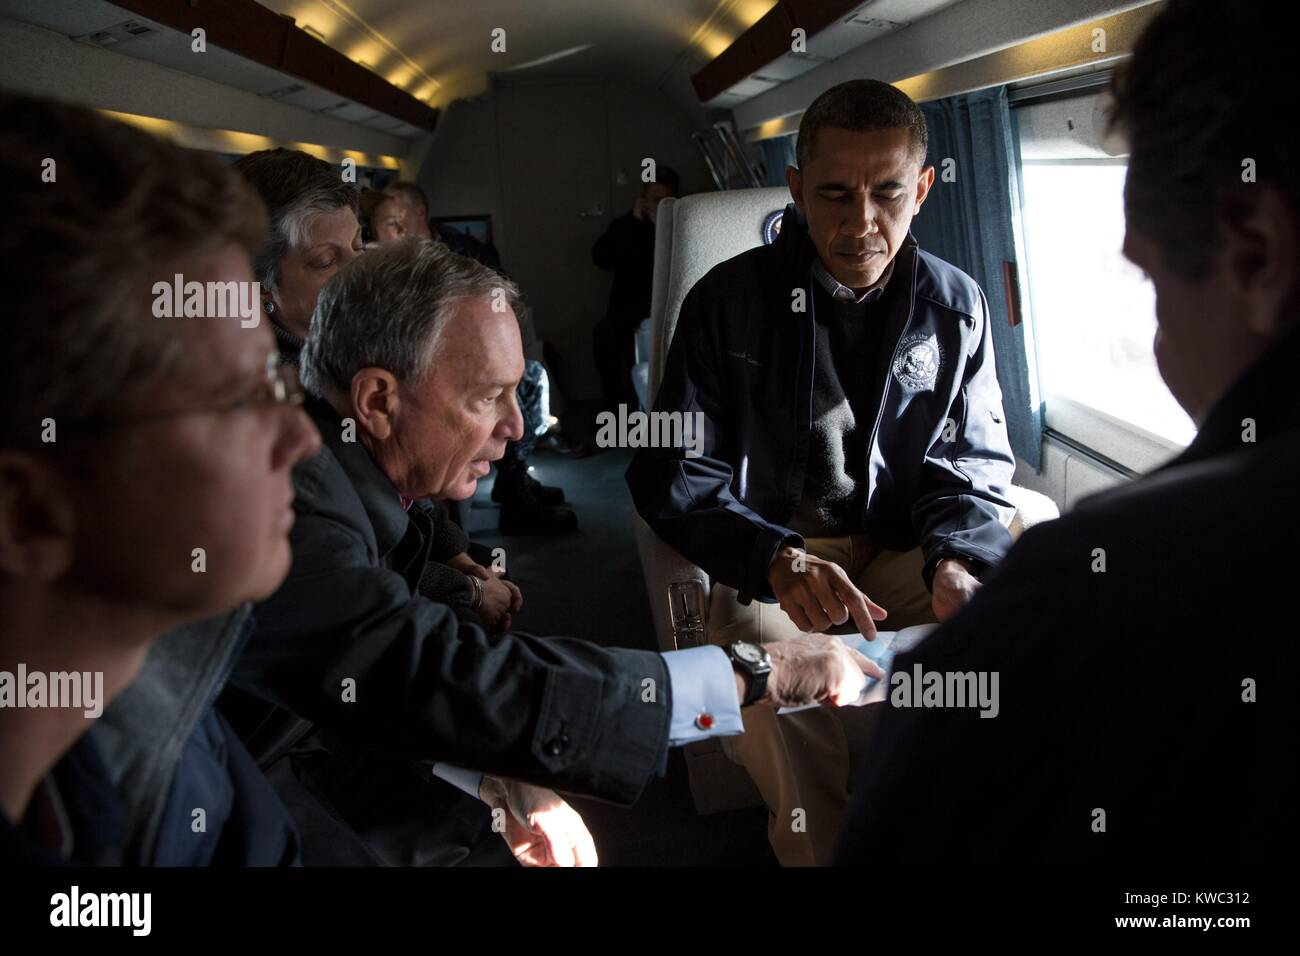 Mayor Michael Bloomberg and President Obama tour of Hurricane Sandy storm damage in NYC. Nov. 15, 2012. Aboard Marine - Stock Image